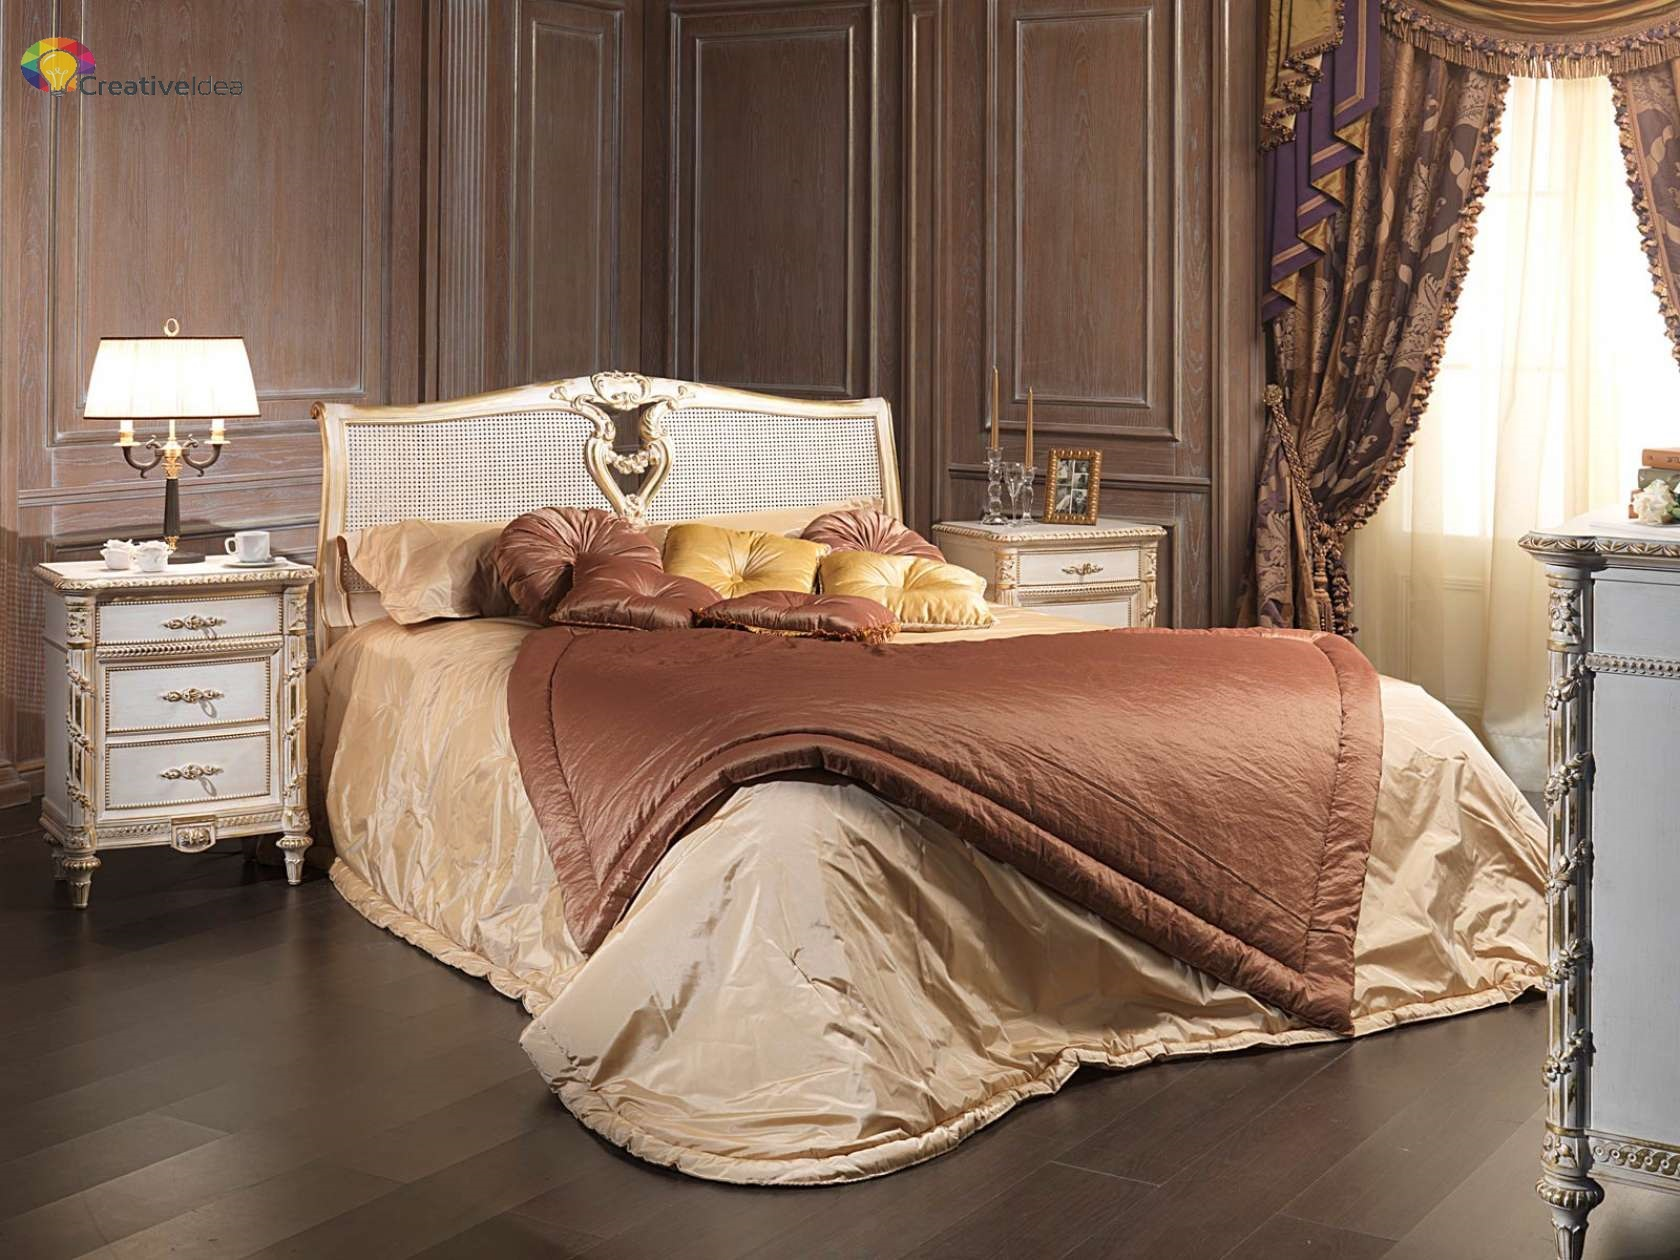 Classic bedroom in indian cane White and Gold,